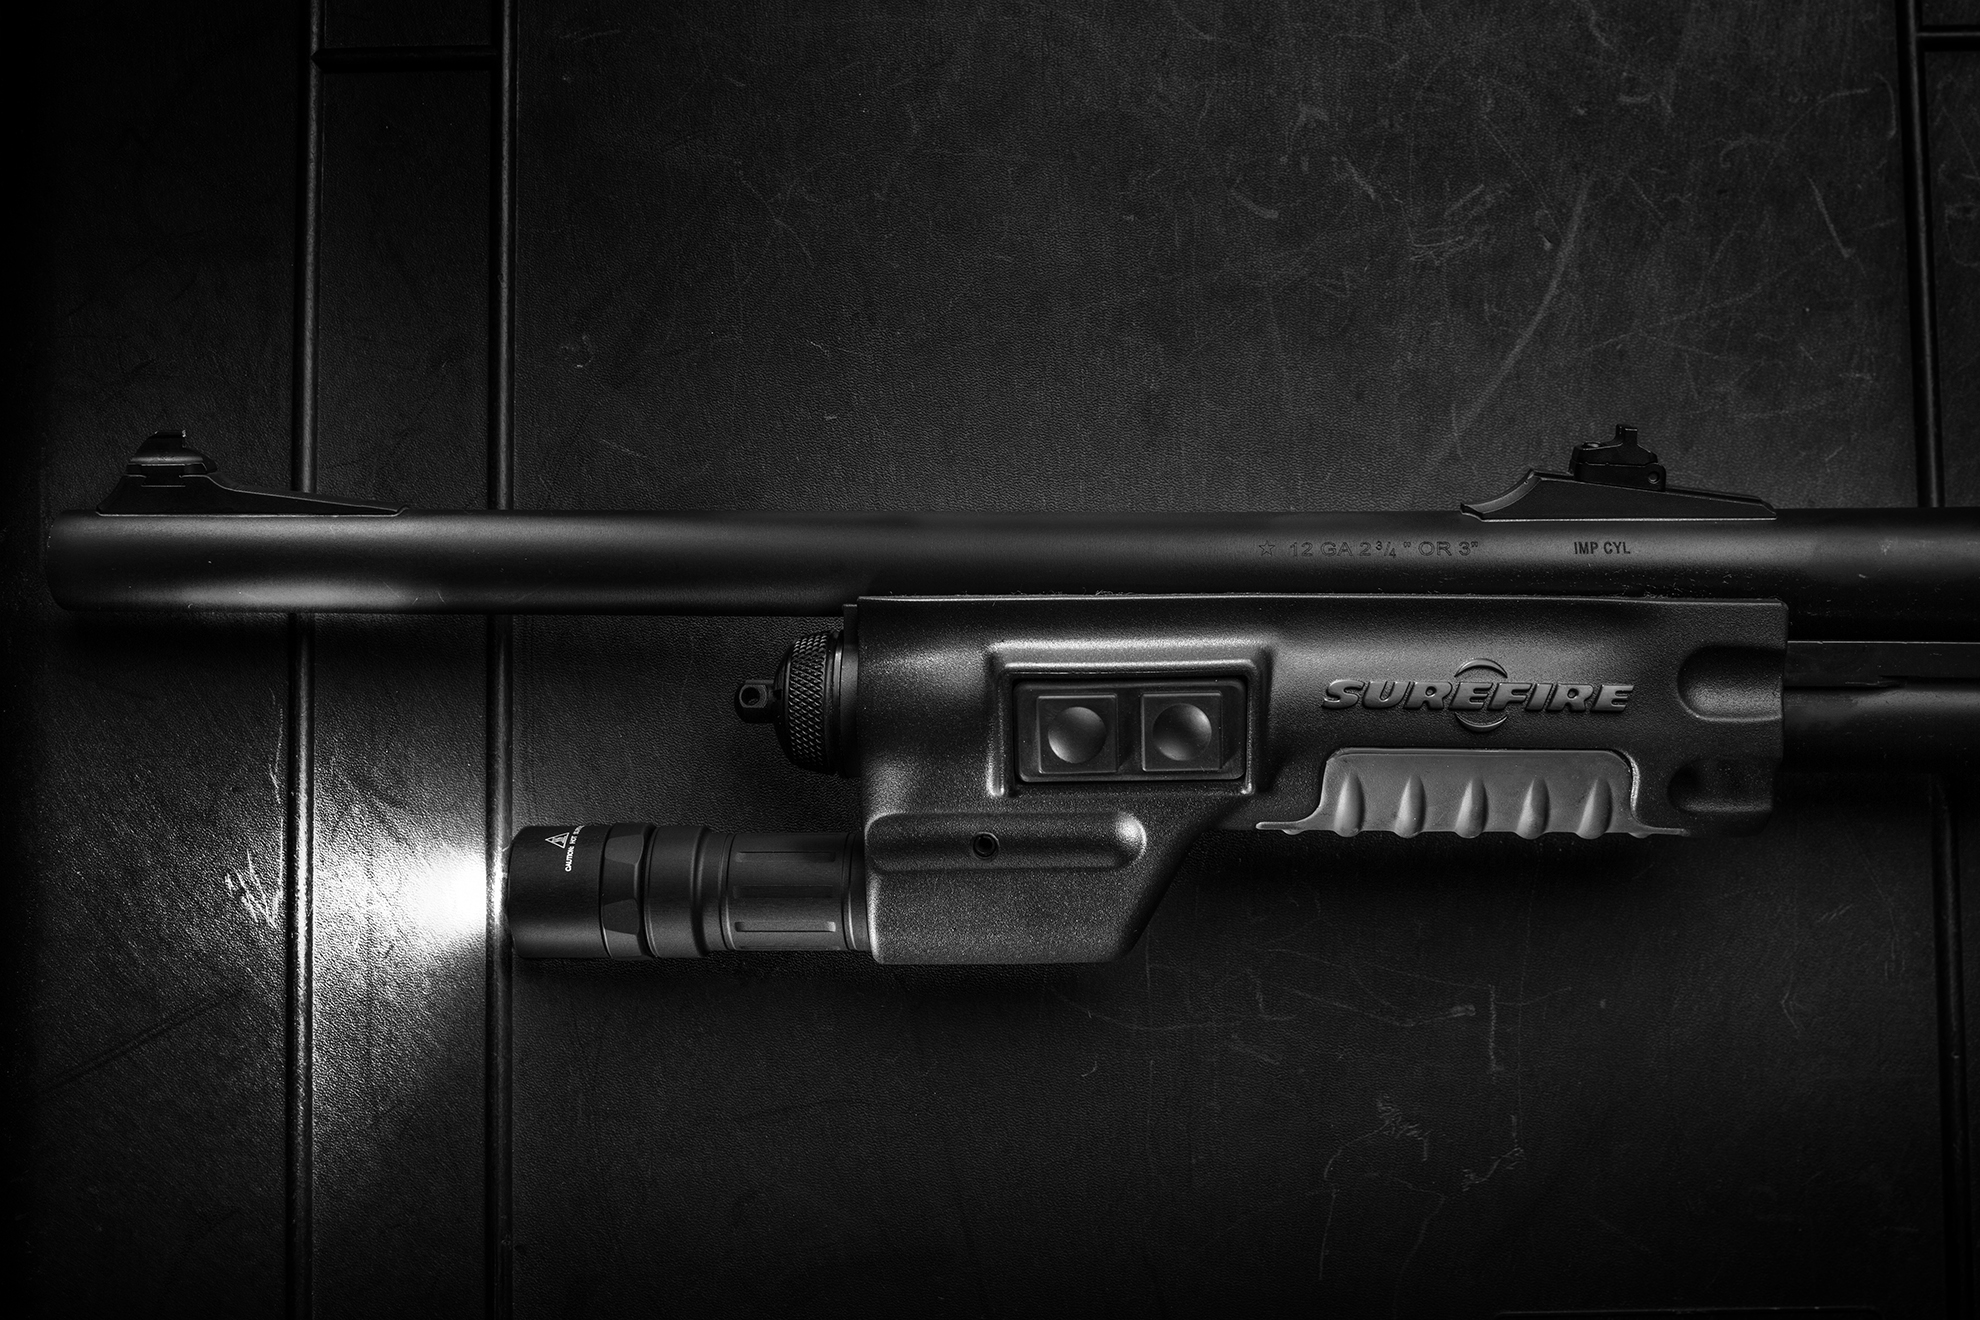 SureFire 618LMG shotgun forend WeaponLight with light turned on